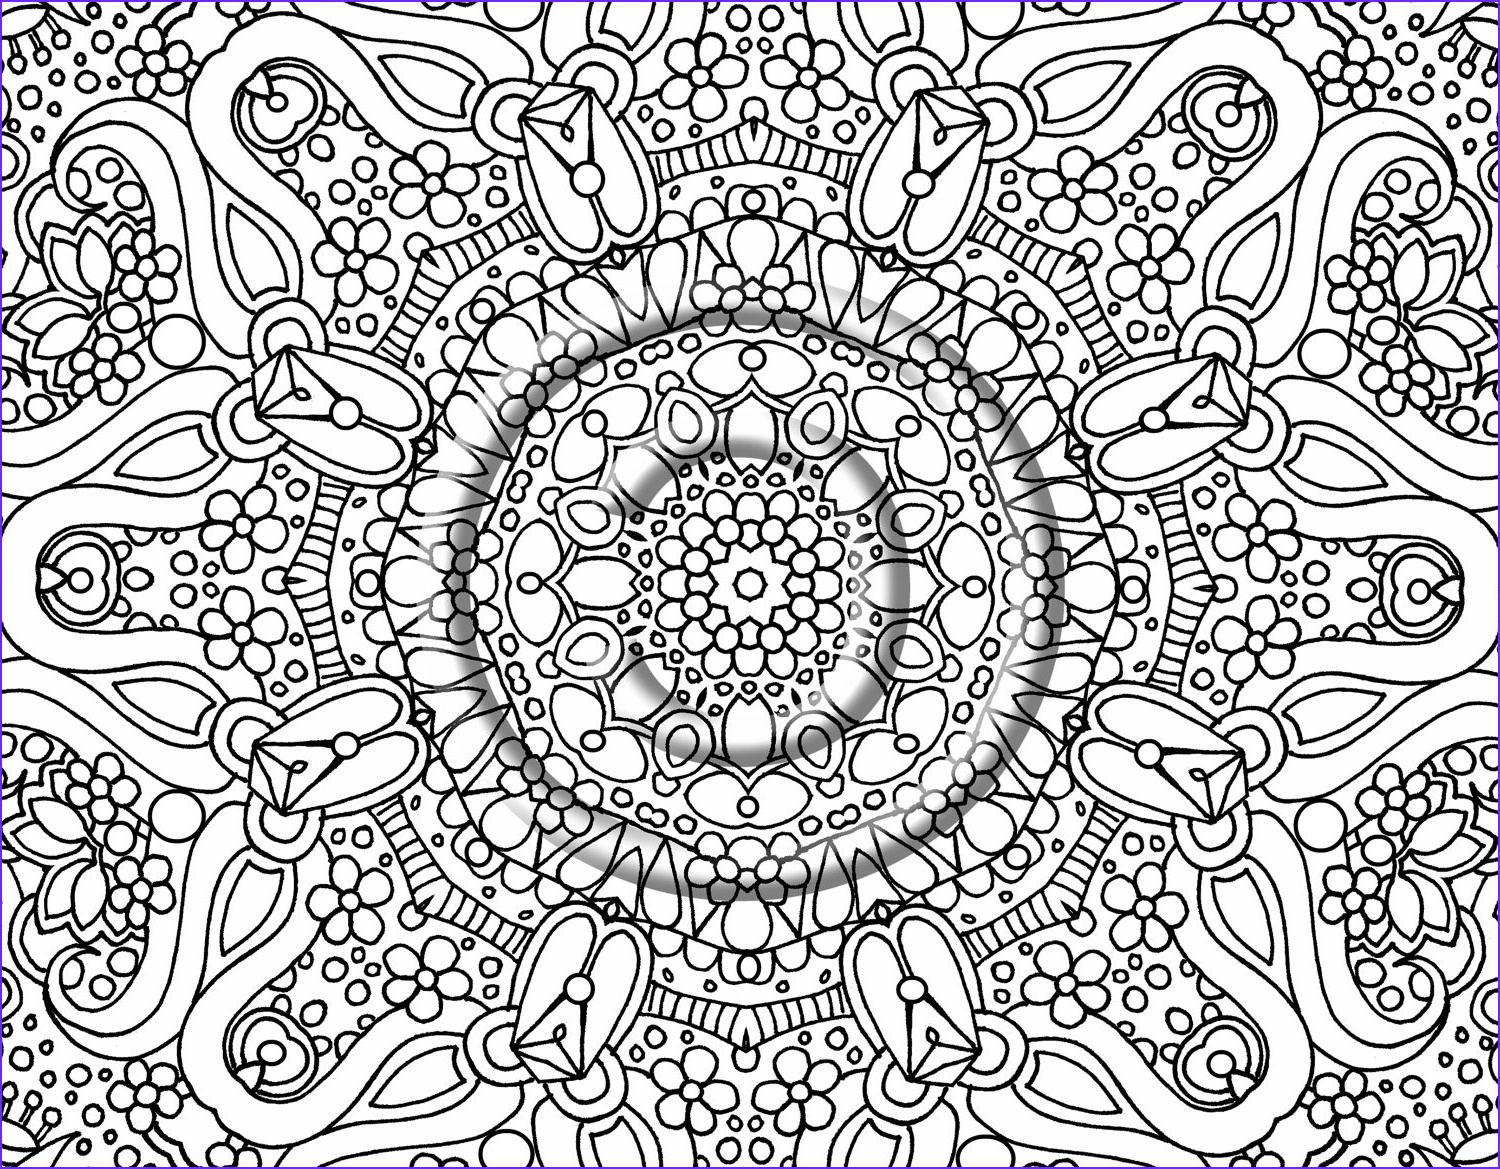 Printable Coloring Pages for Adults Abstract Elegant Photos Free Printable Abstract Coloring Pages for Adults